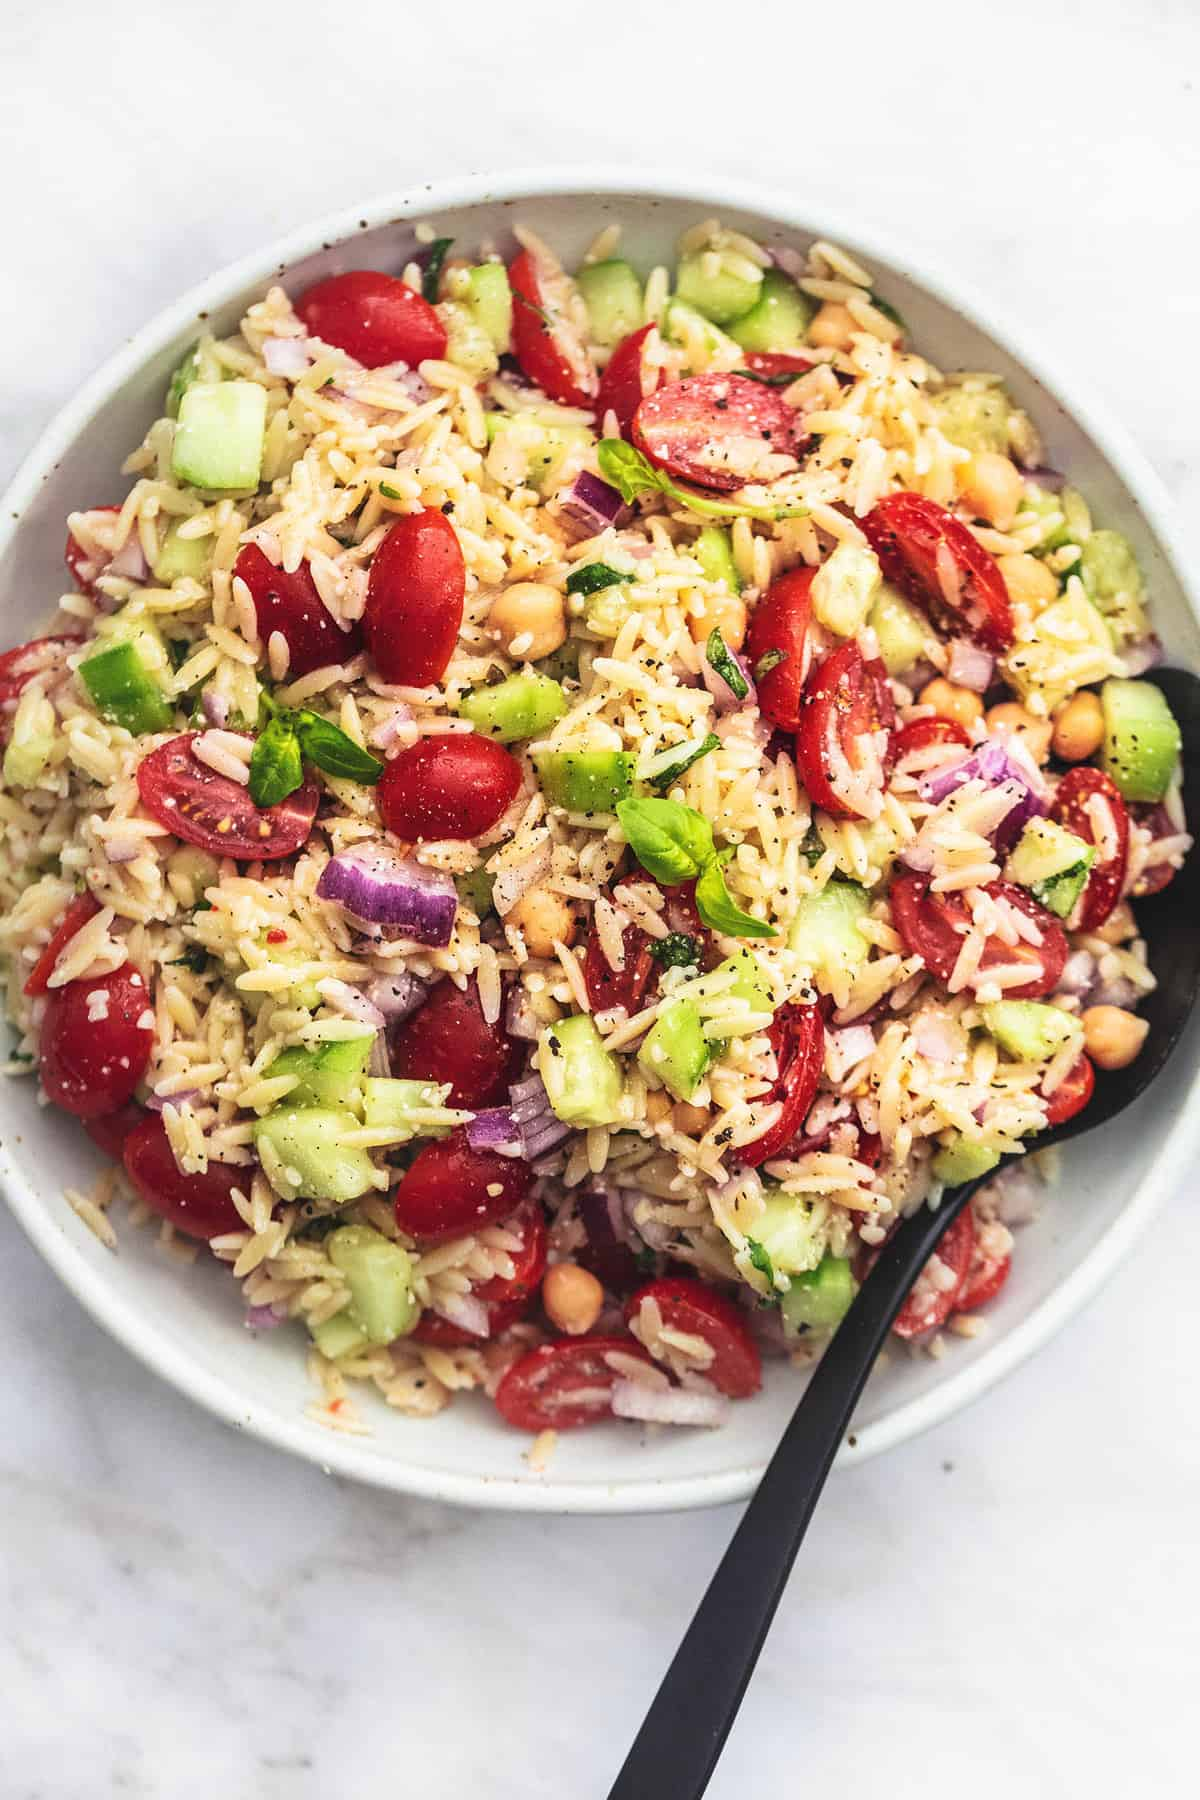 top view of Italian orzo salad with a serving spoon in a bowl.